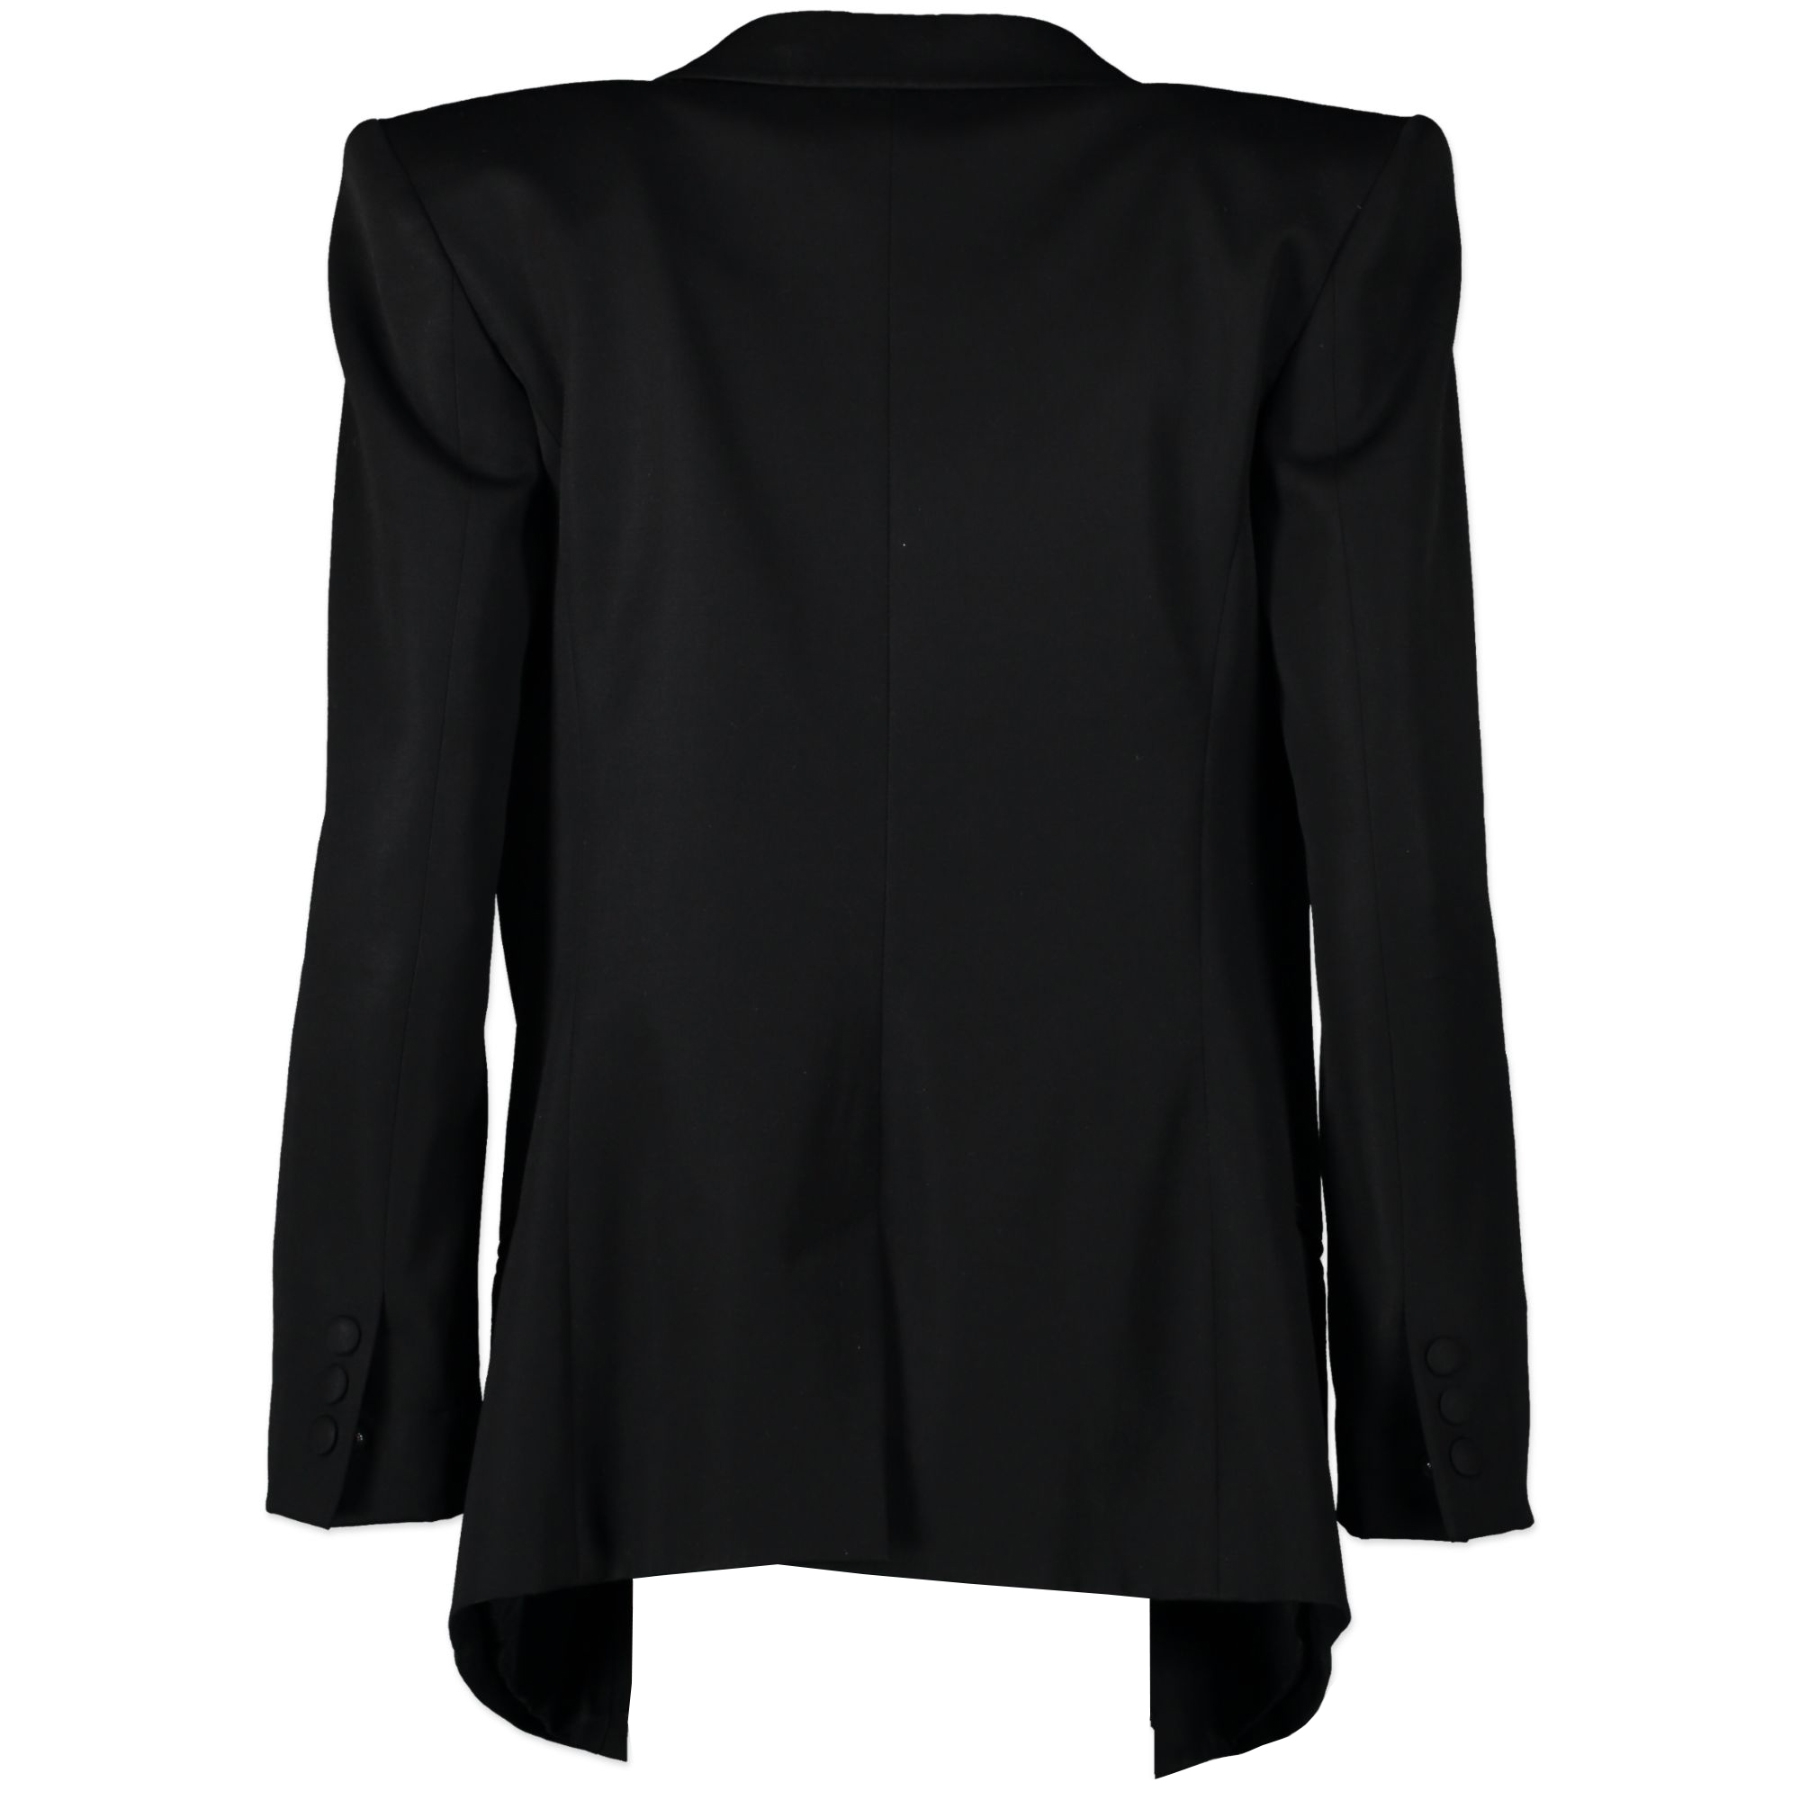 Authentic secondhand Balmain Black Blazer with Silver Brooch - Size 38 designer clothing fashion luxury vintage webshop safe secure online shopping